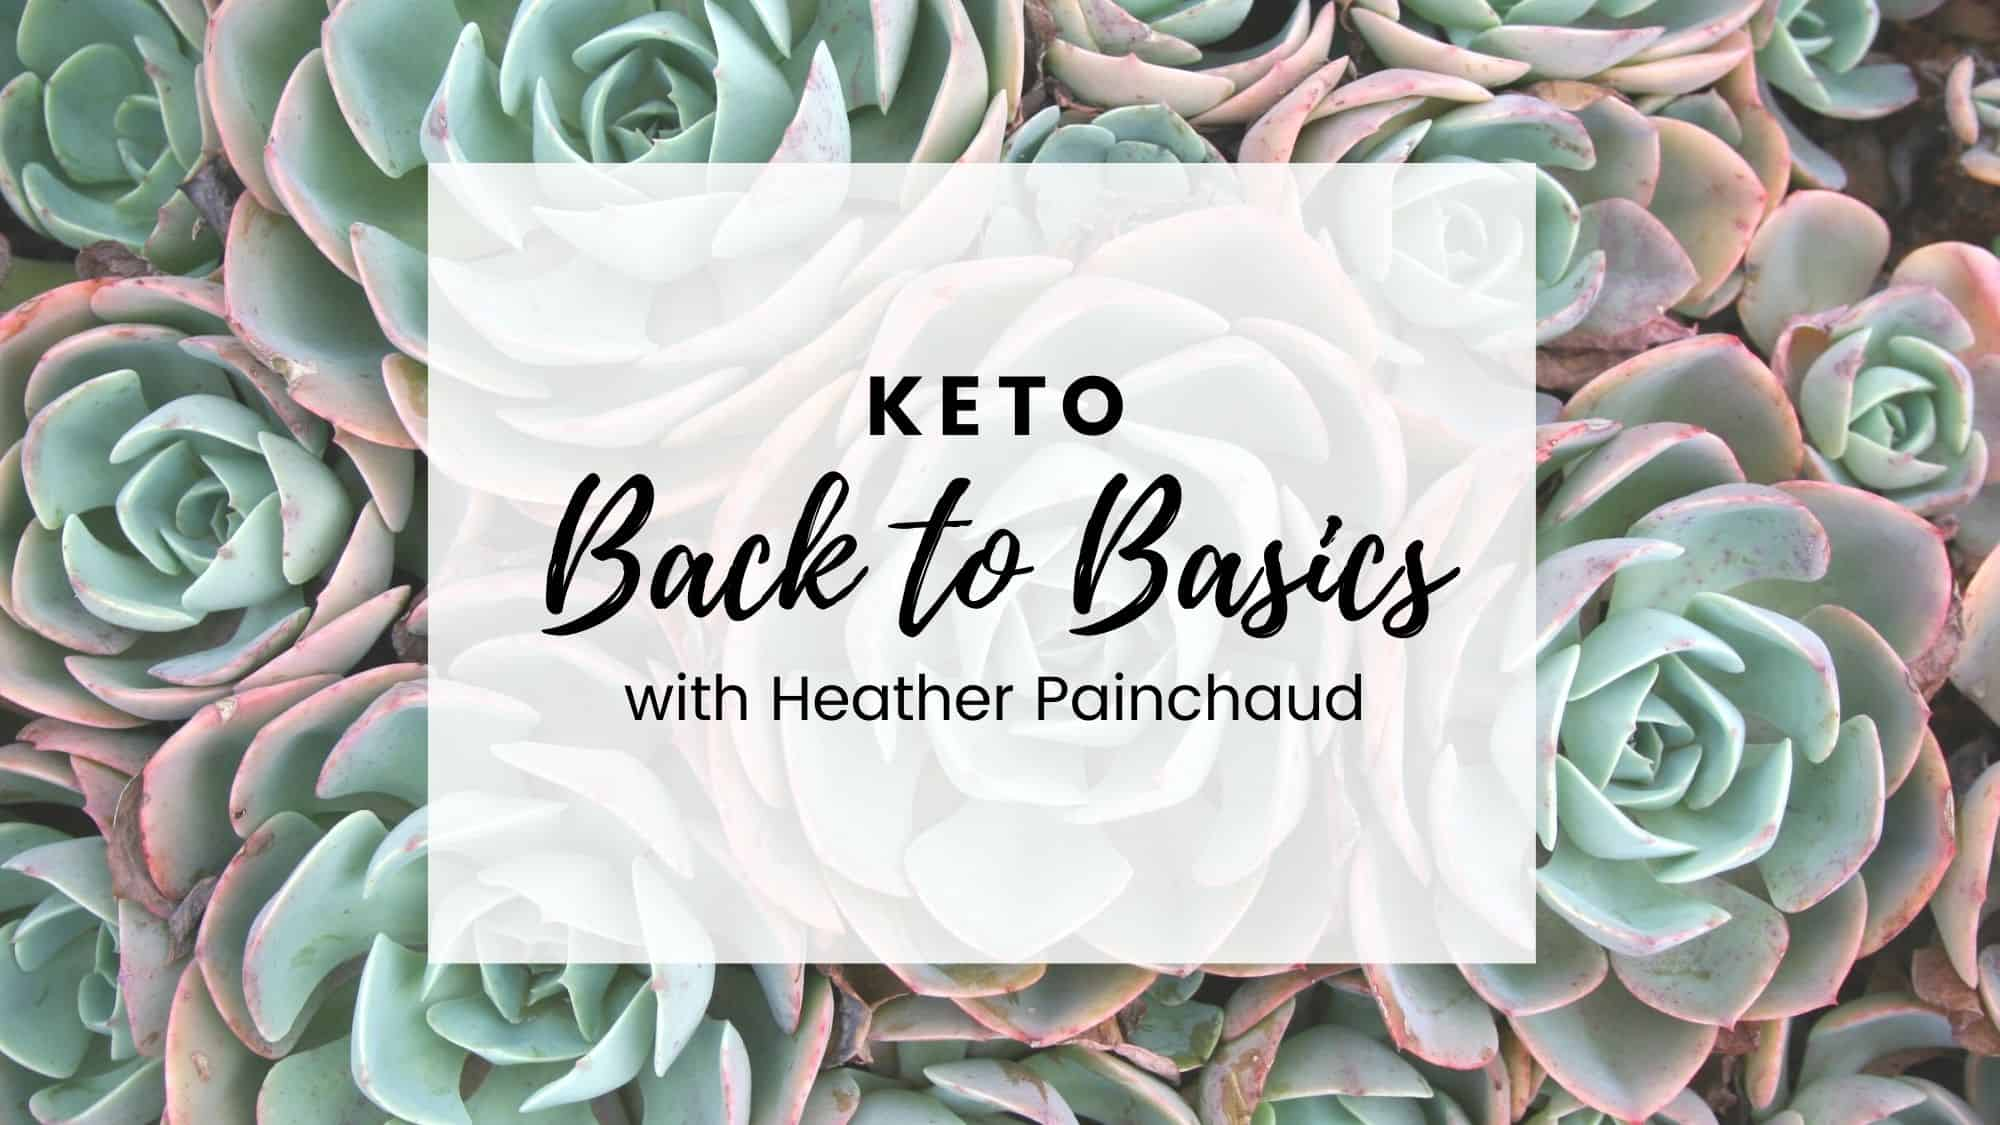 keto back to basics course